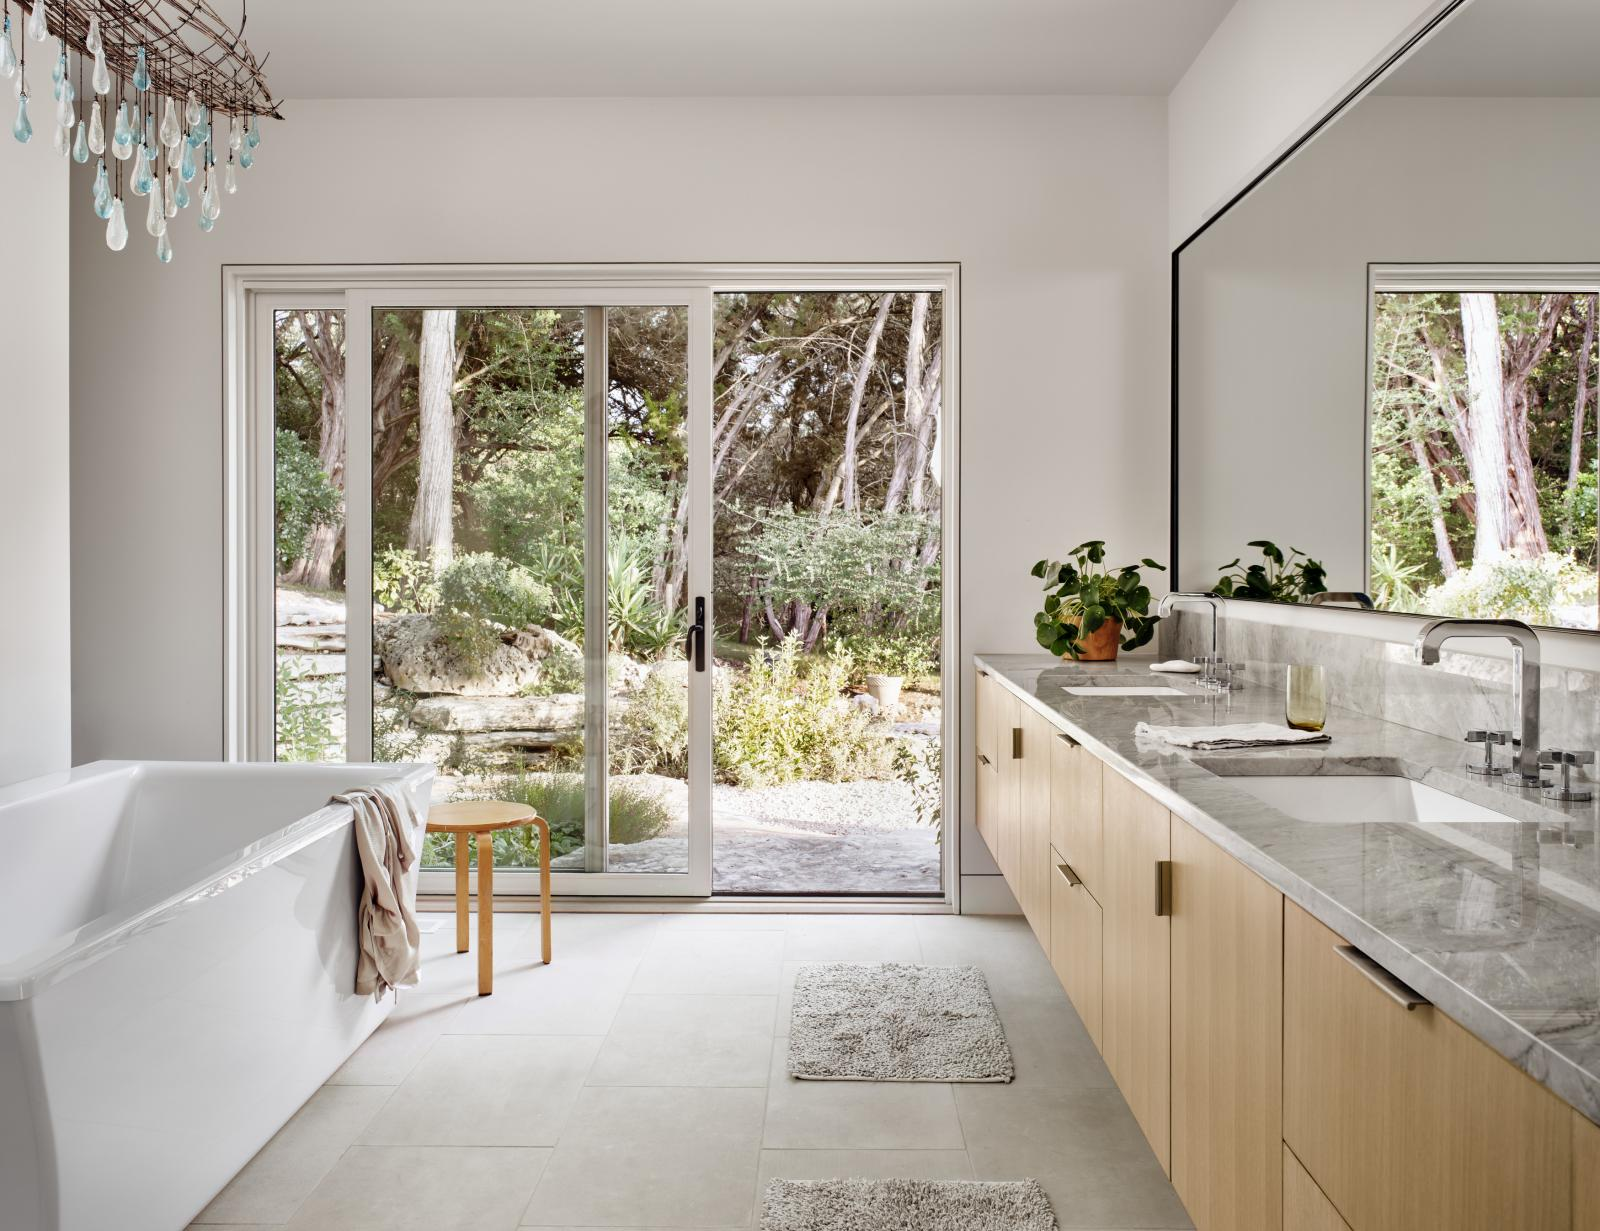 Interior master bathroom connects through a sliding glass door to outdoor landscape